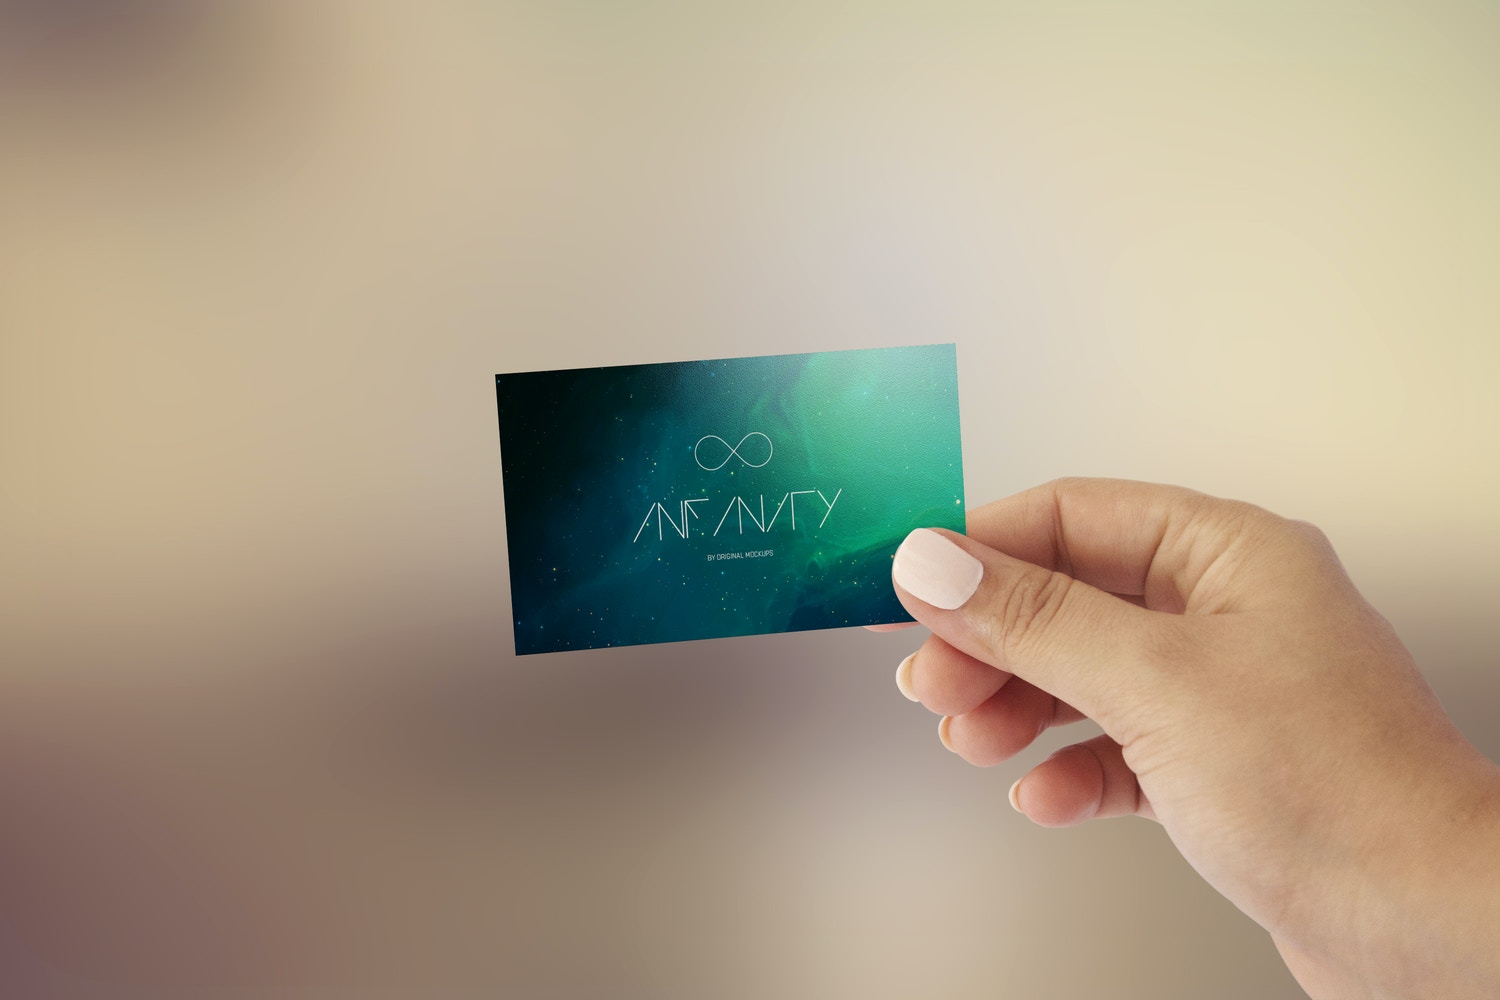 Business Card Mockup 3 by Original Mockups on Original Mockups